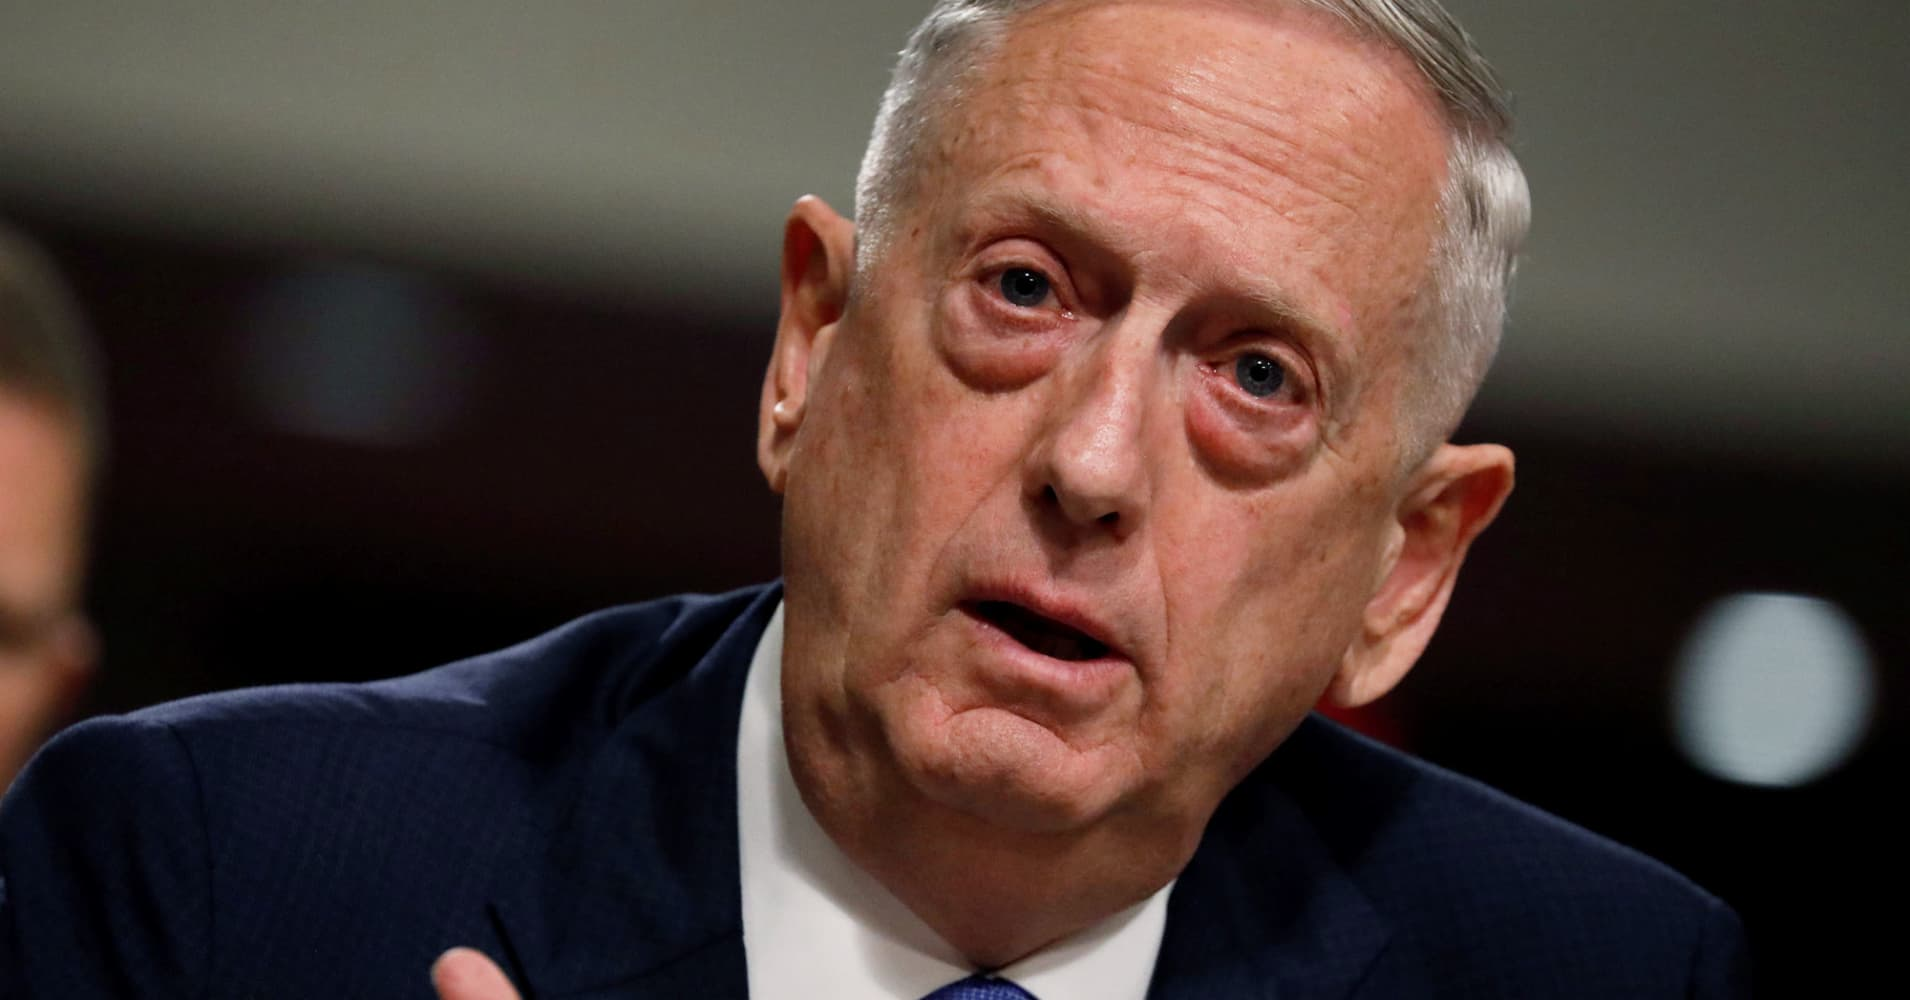 Mattis: US forces fighting ISIS shifting focus to more 'stabilizing' role in 2018